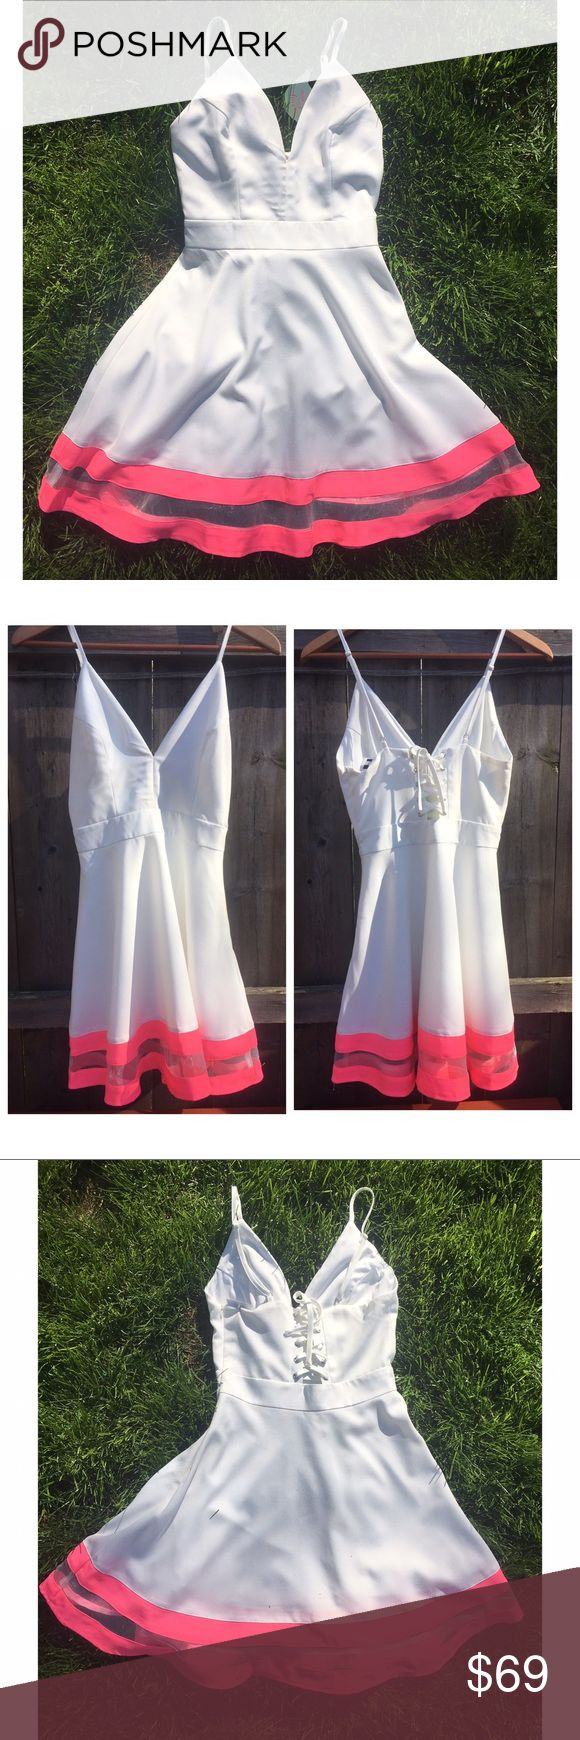 TEA/CUP WHITE/Pink Flippy Corset-back Mini-NWT-SzS Tea & Cup Spaghetti Strap flippy white Dress w/ a Lace-up back bodice. Pink and clear Gauze stripes Hem. Just beautiful - femme and frolic. NWT- $80.  Fabulous! Tea n Cup Dresses Mini